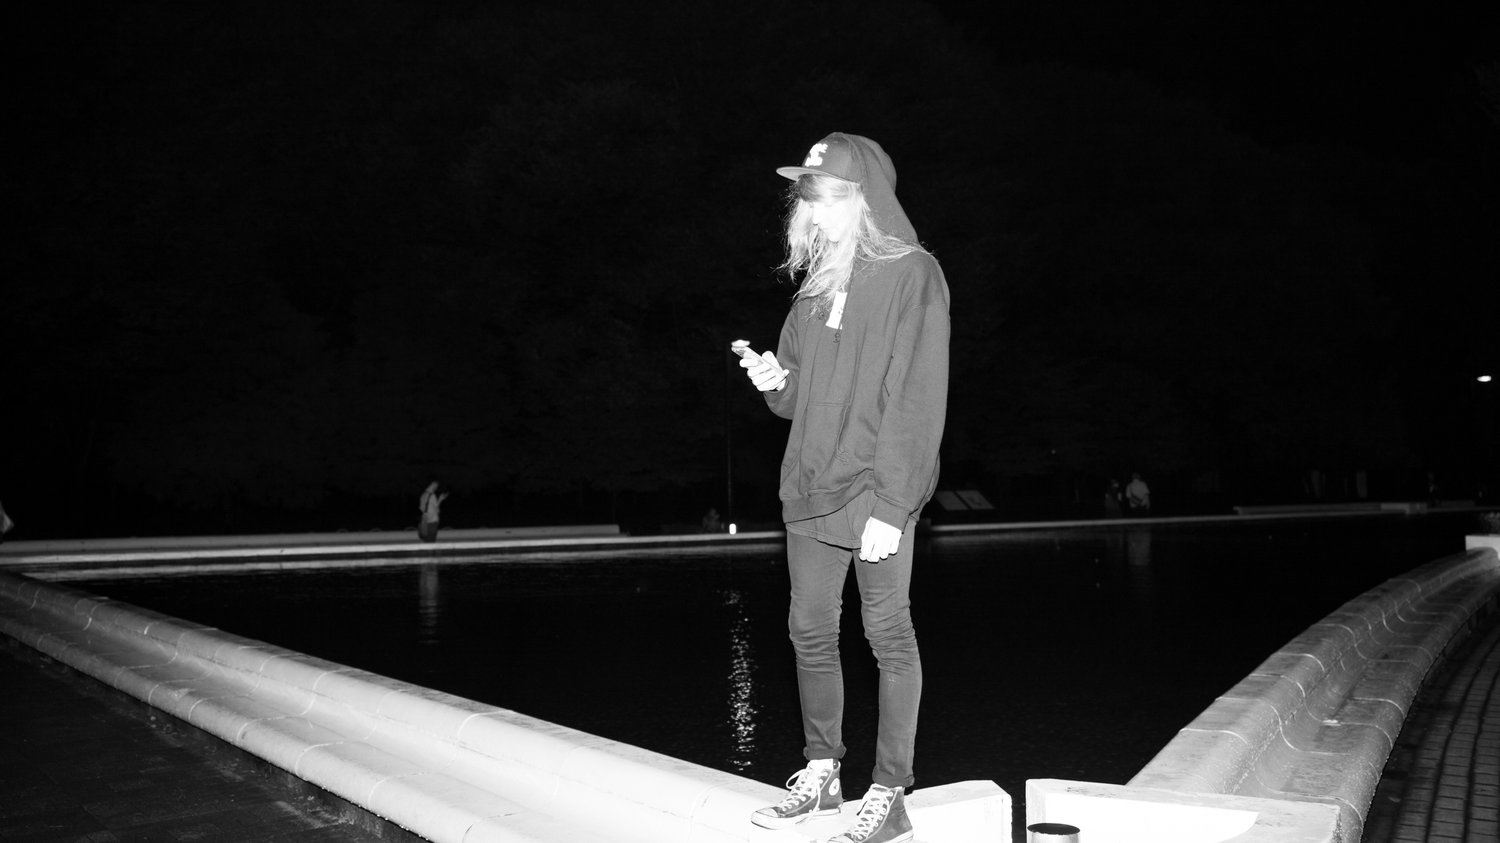 .@nprmusic features @CASHMERECAT and discuss his new album #9 and more https://t.co/GBlidDprwG https://t.co/EktF6BYqVX